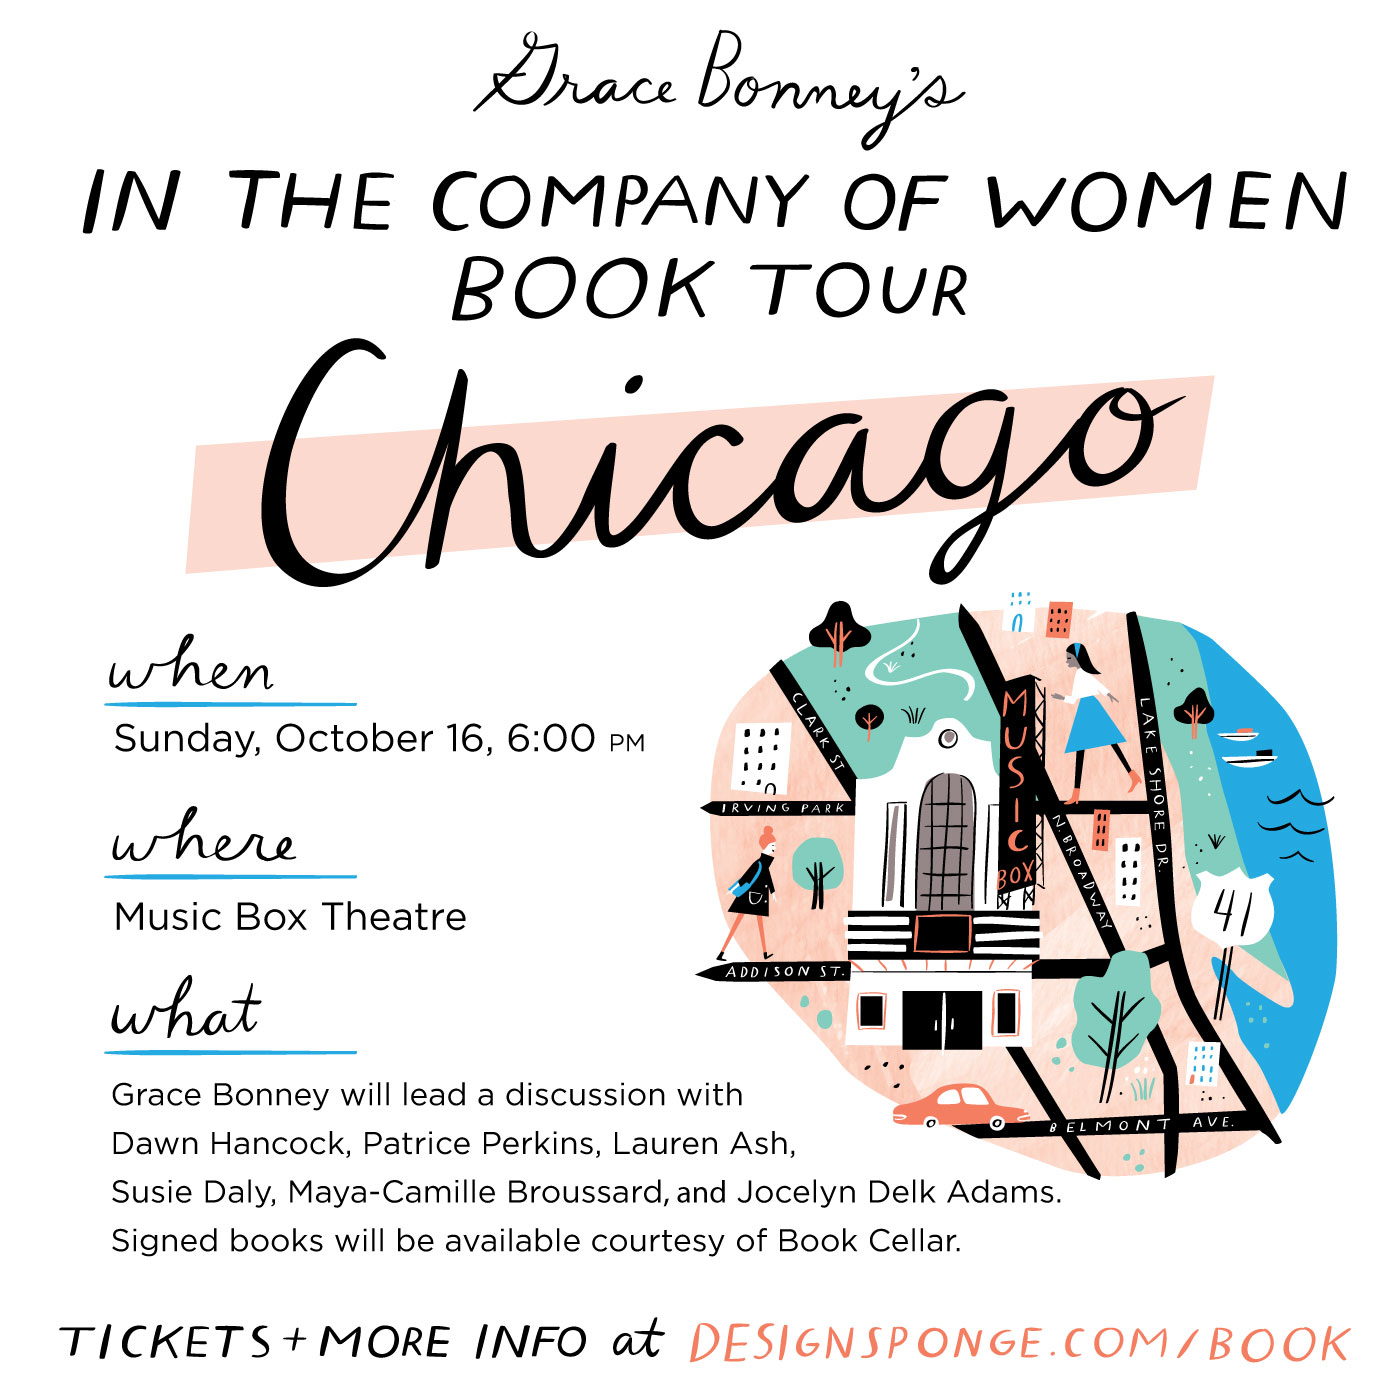 itcow_booktour_promos_cities_chicago